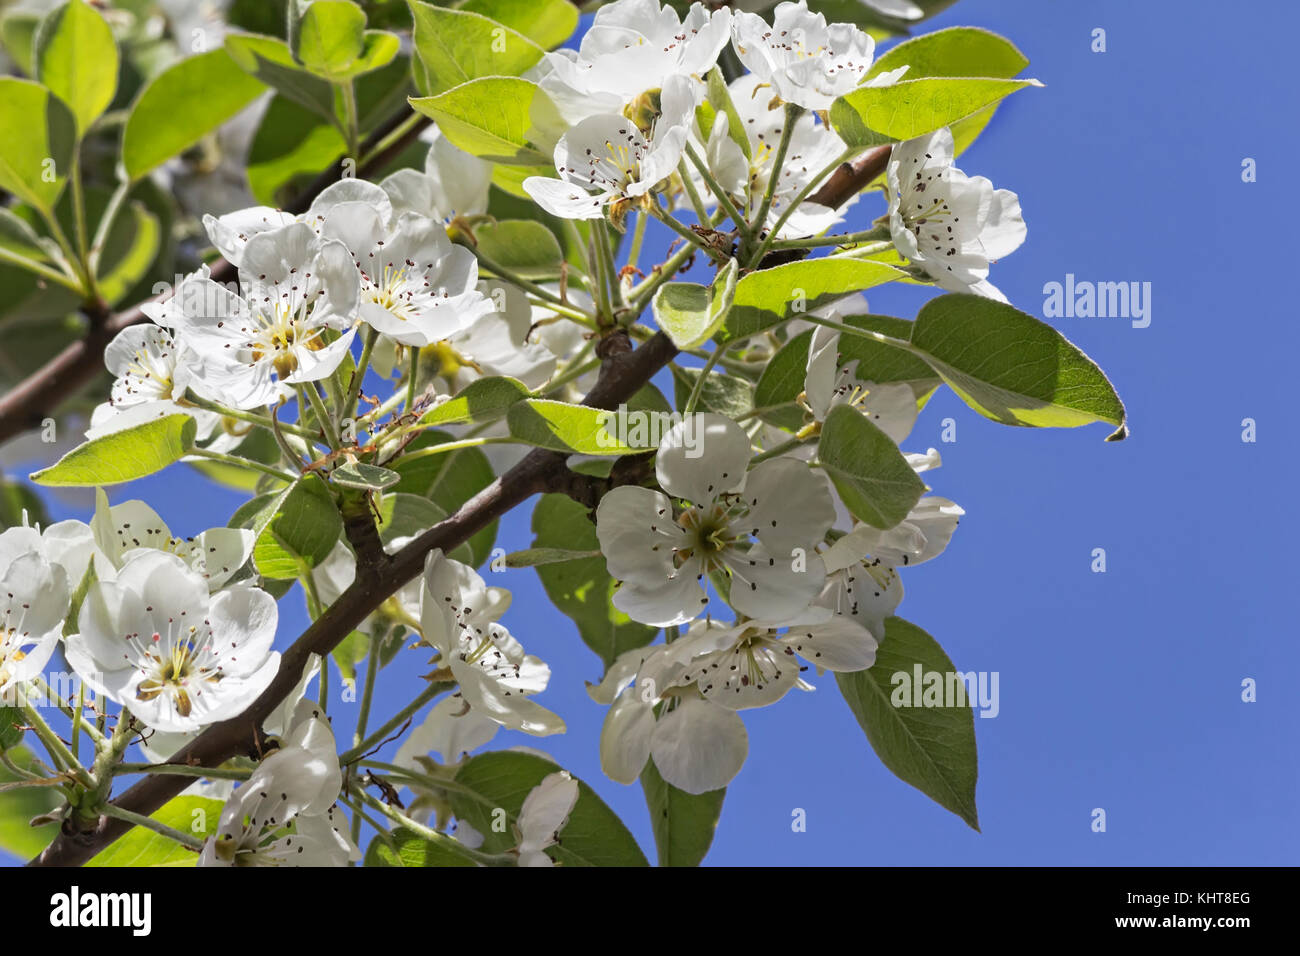 The Pear Tree With Lots Of Pink And White Flowers And Buds In A